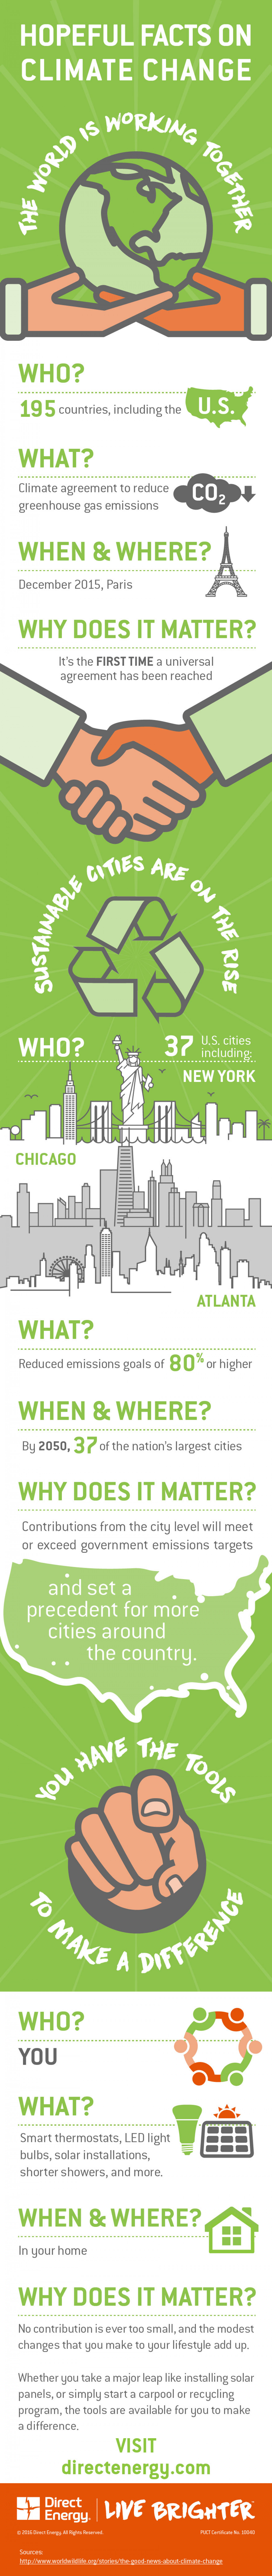 Hopeful facts on climate change Infographic